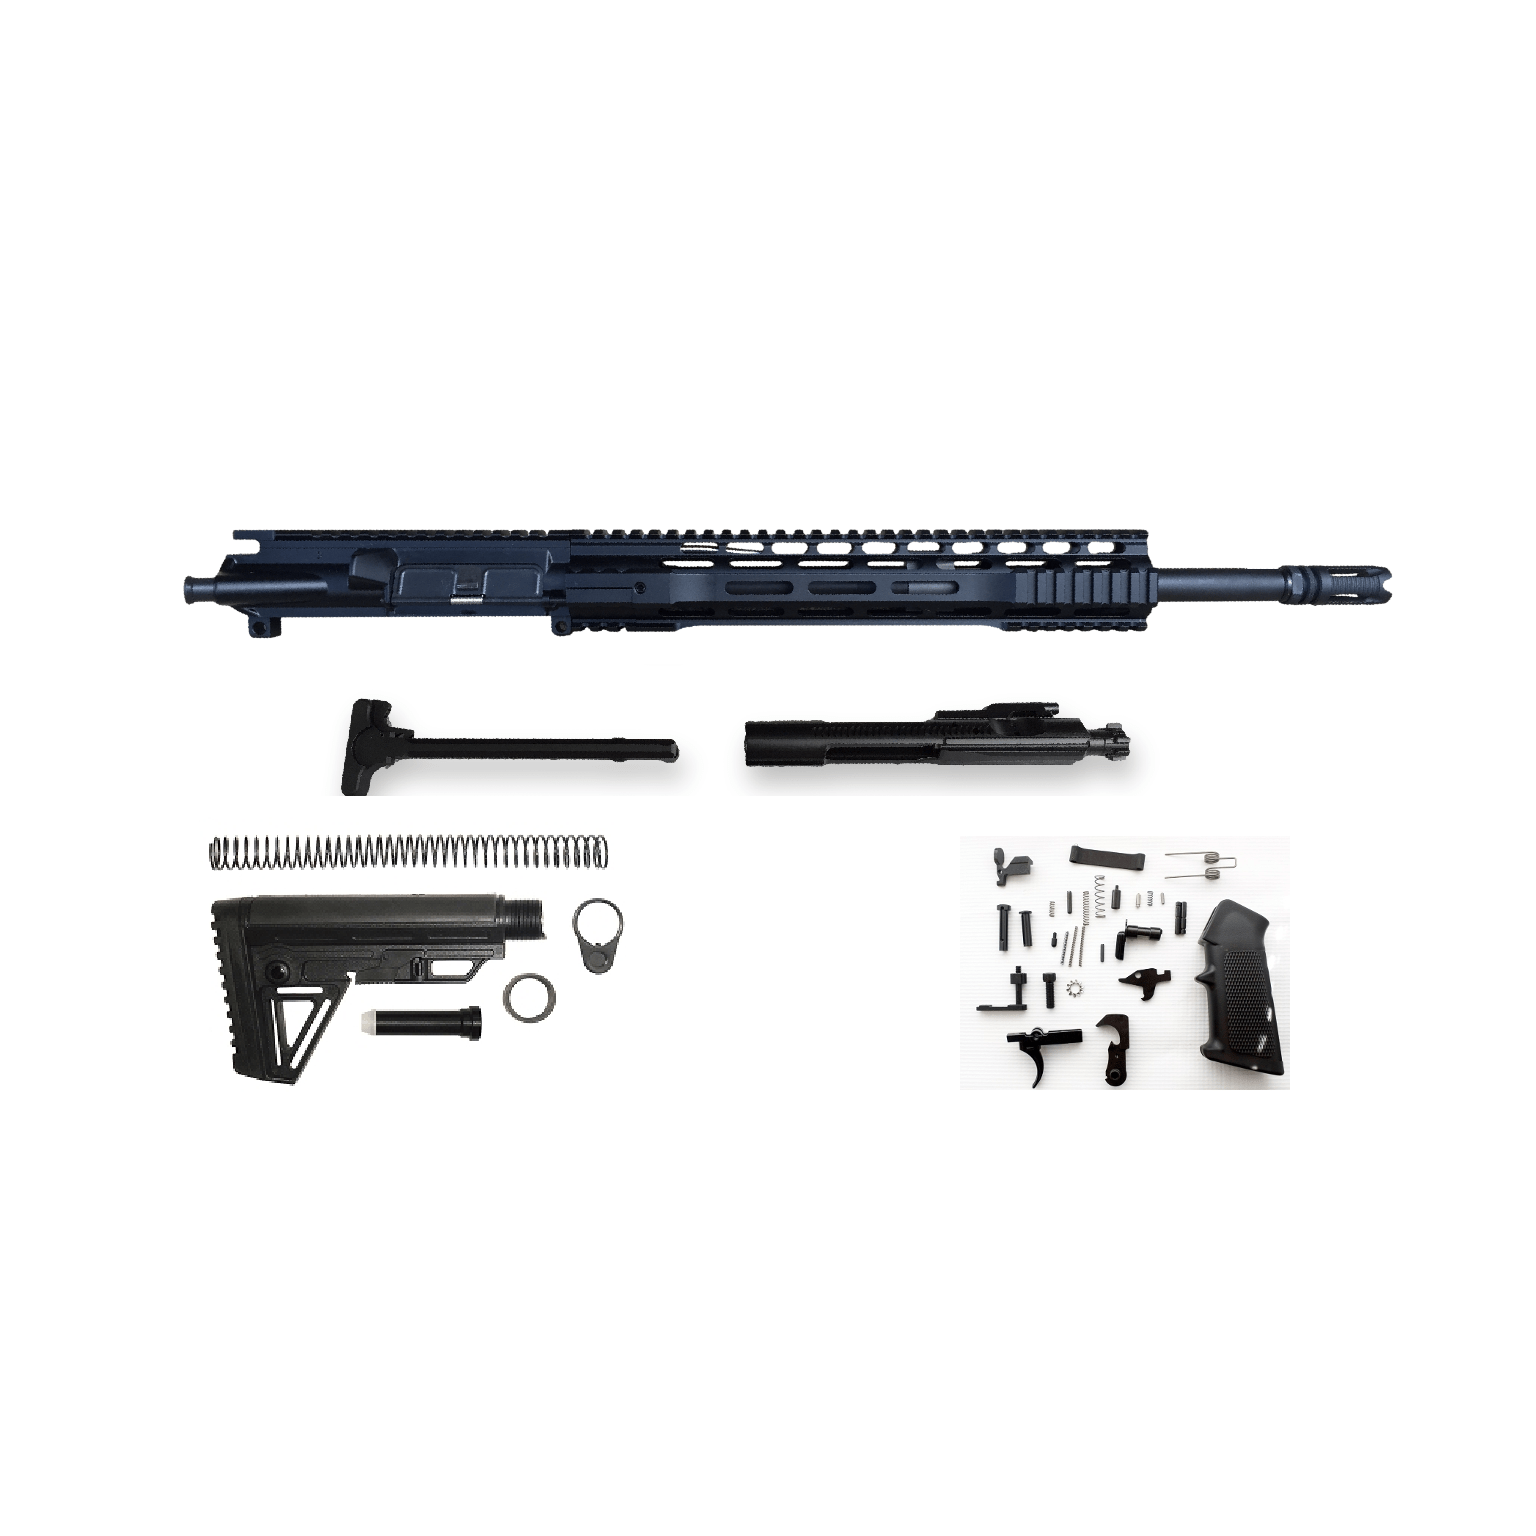 Ar15 Rifle Build Kit With Upgrades 489